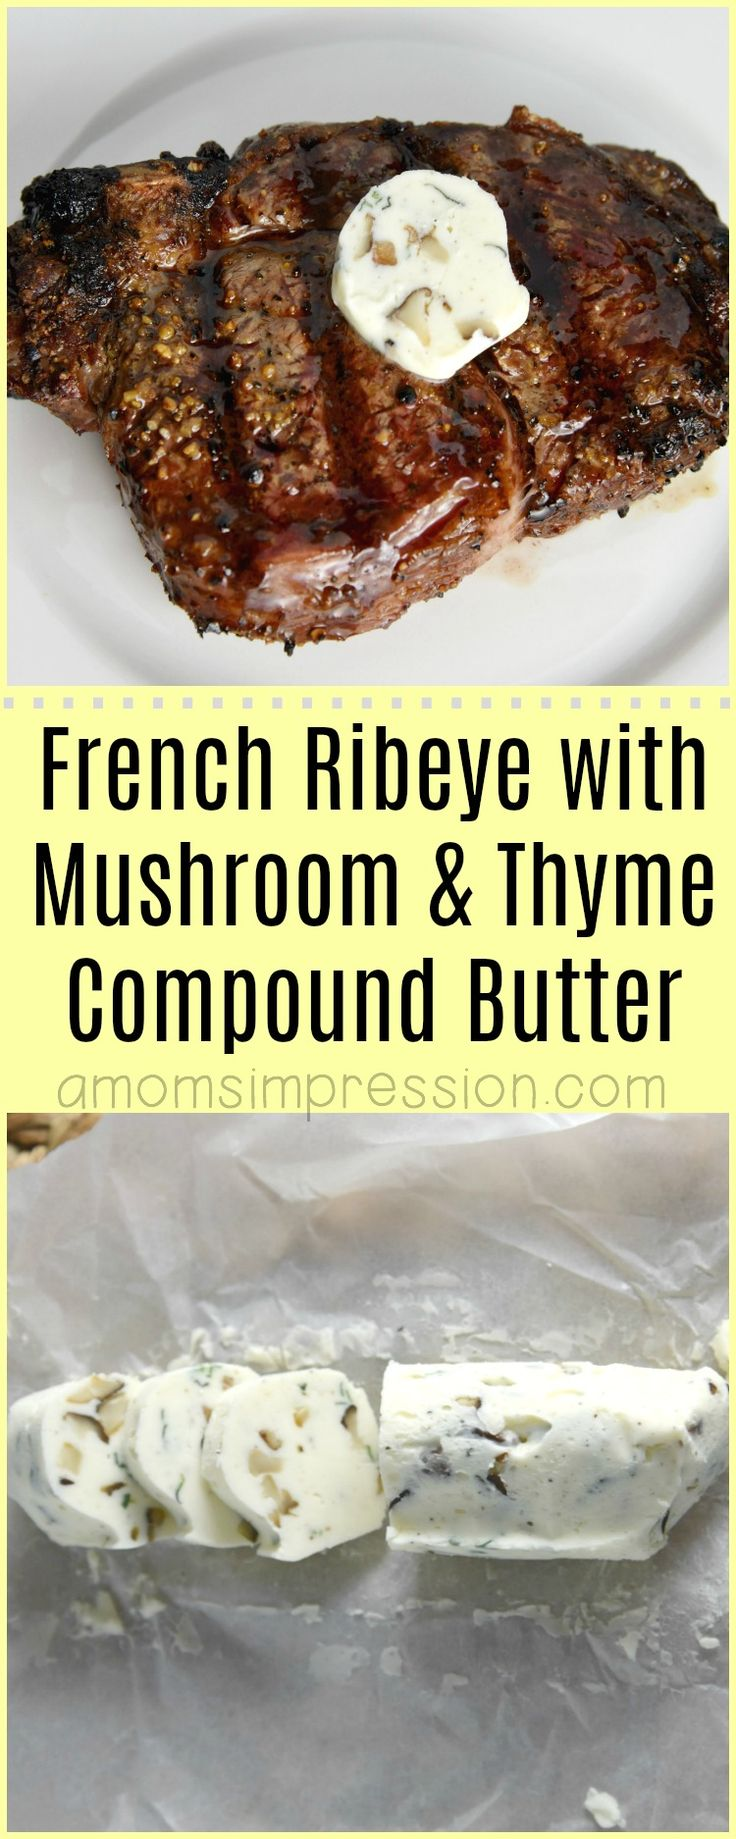 Bone-in French Ribeye Steak with Mushroom and Thyme Compound Butter recipe. This extra step of making compound butter makes a great flavor impression. #moinkbox #getmoinked #ad